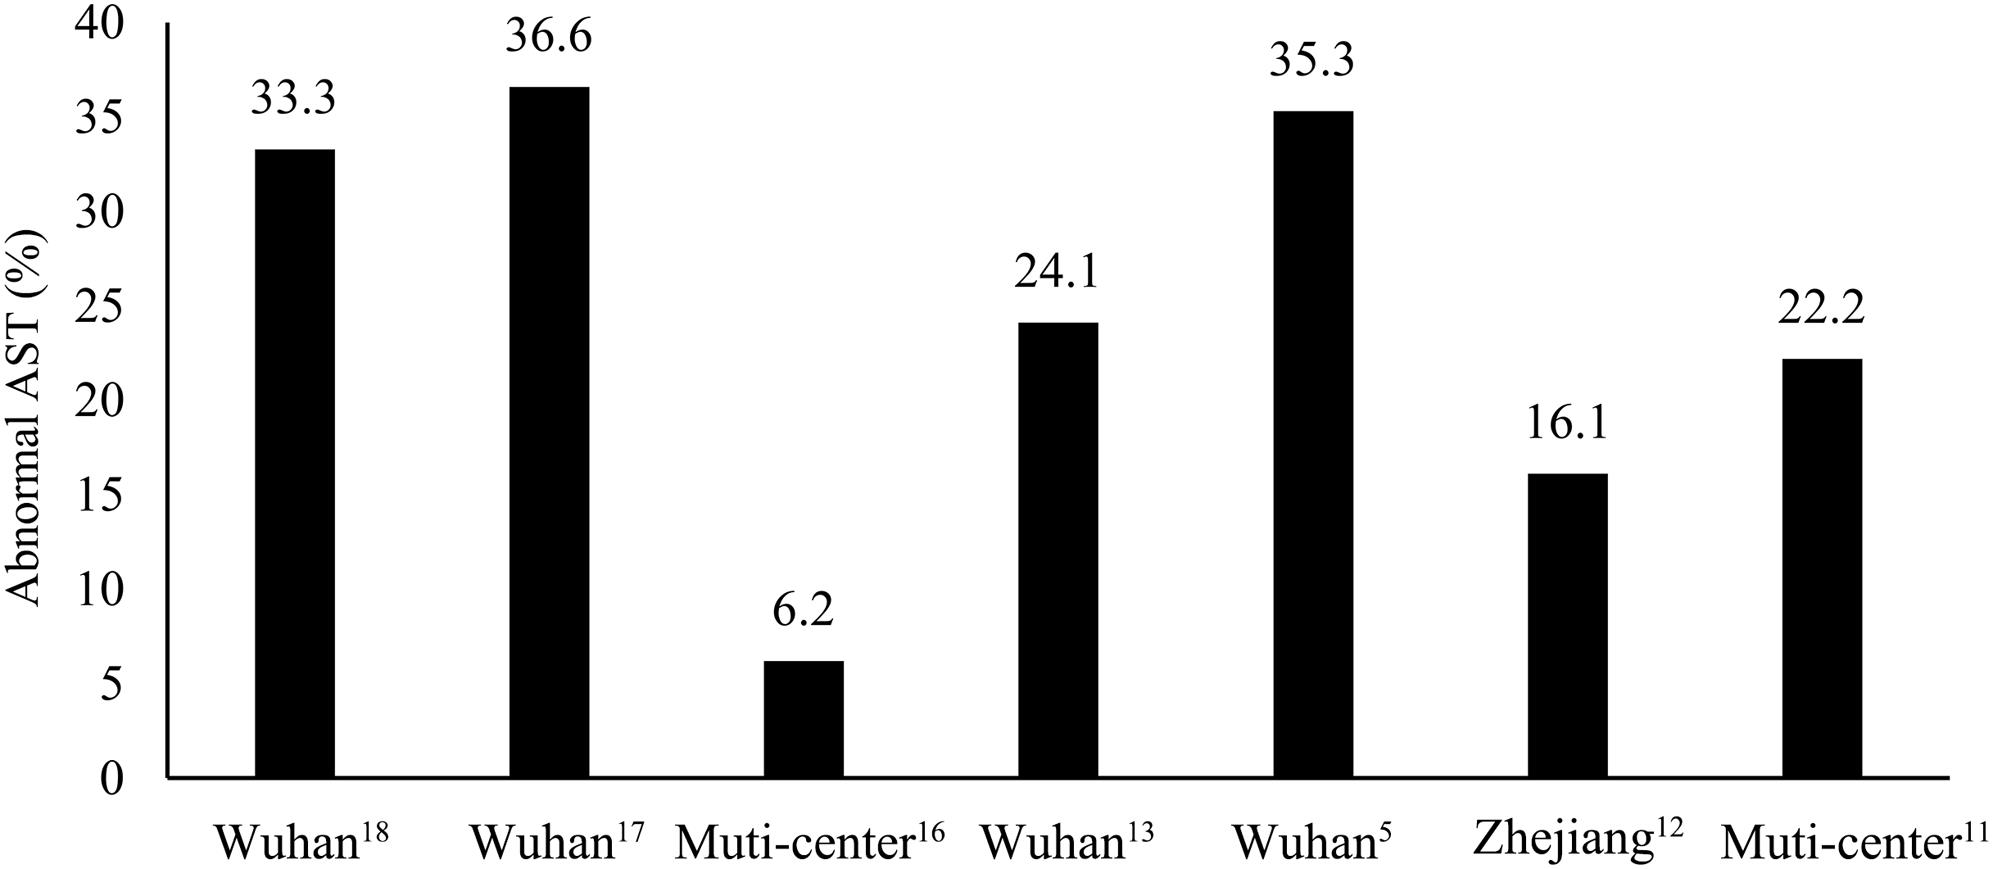 Proportion of patients with liver dysfunction in Chinese regions: Wuhan and outside Wuhan.